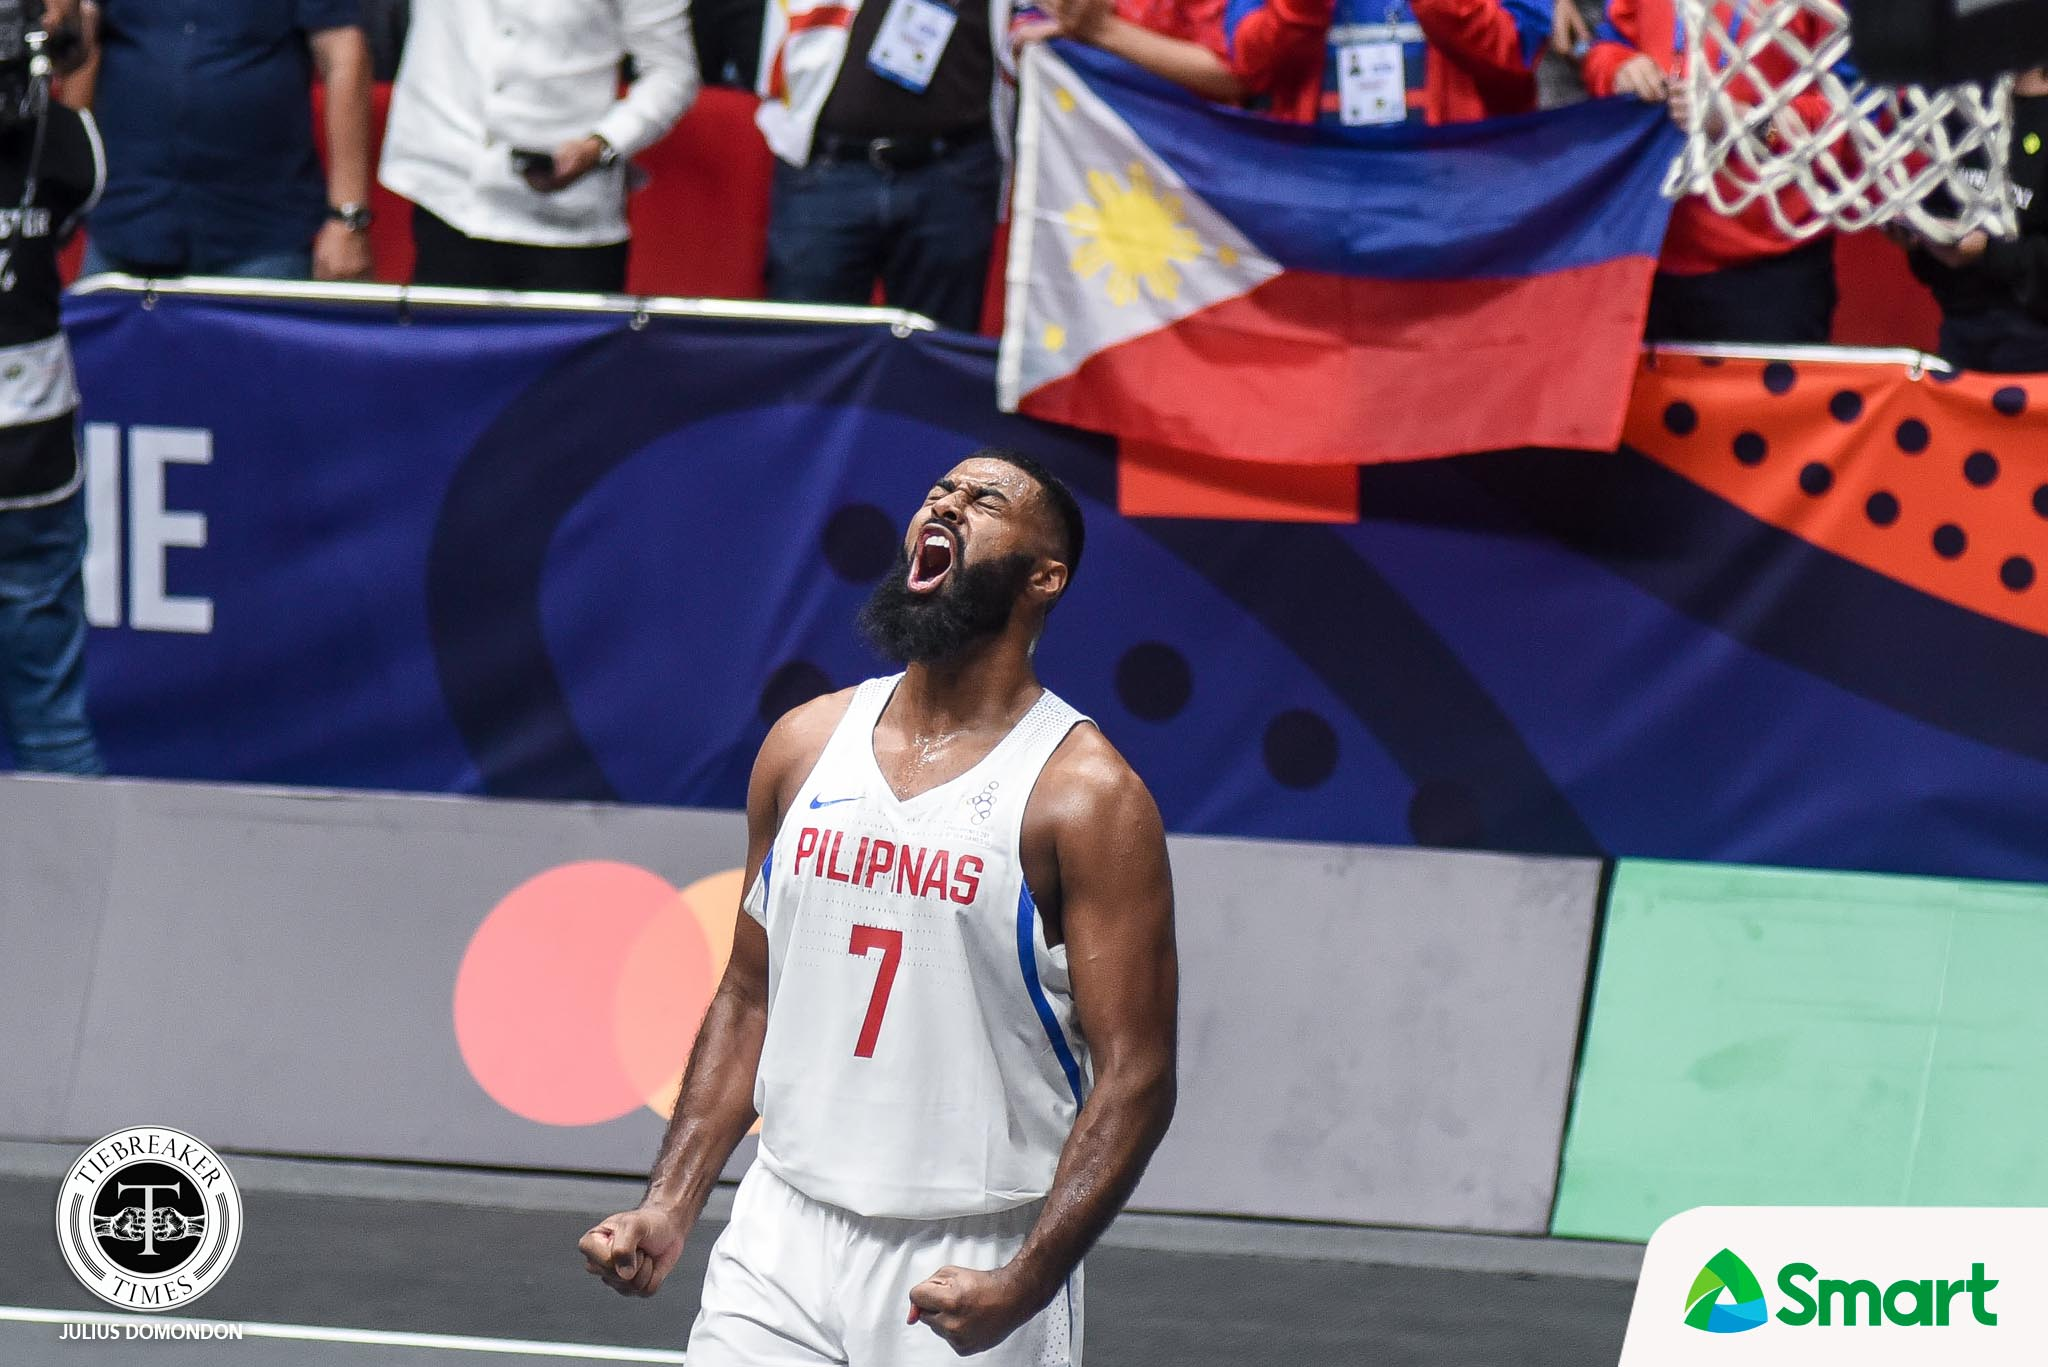 seag-3x3-gilas-3x3-mo-tautuaa Tautuaa, Perez brace for real 3x3 competition in OQT 2020 Tokyo Olympics 3x3 Basketball Gilas Pilipinas News  - philippine sports news